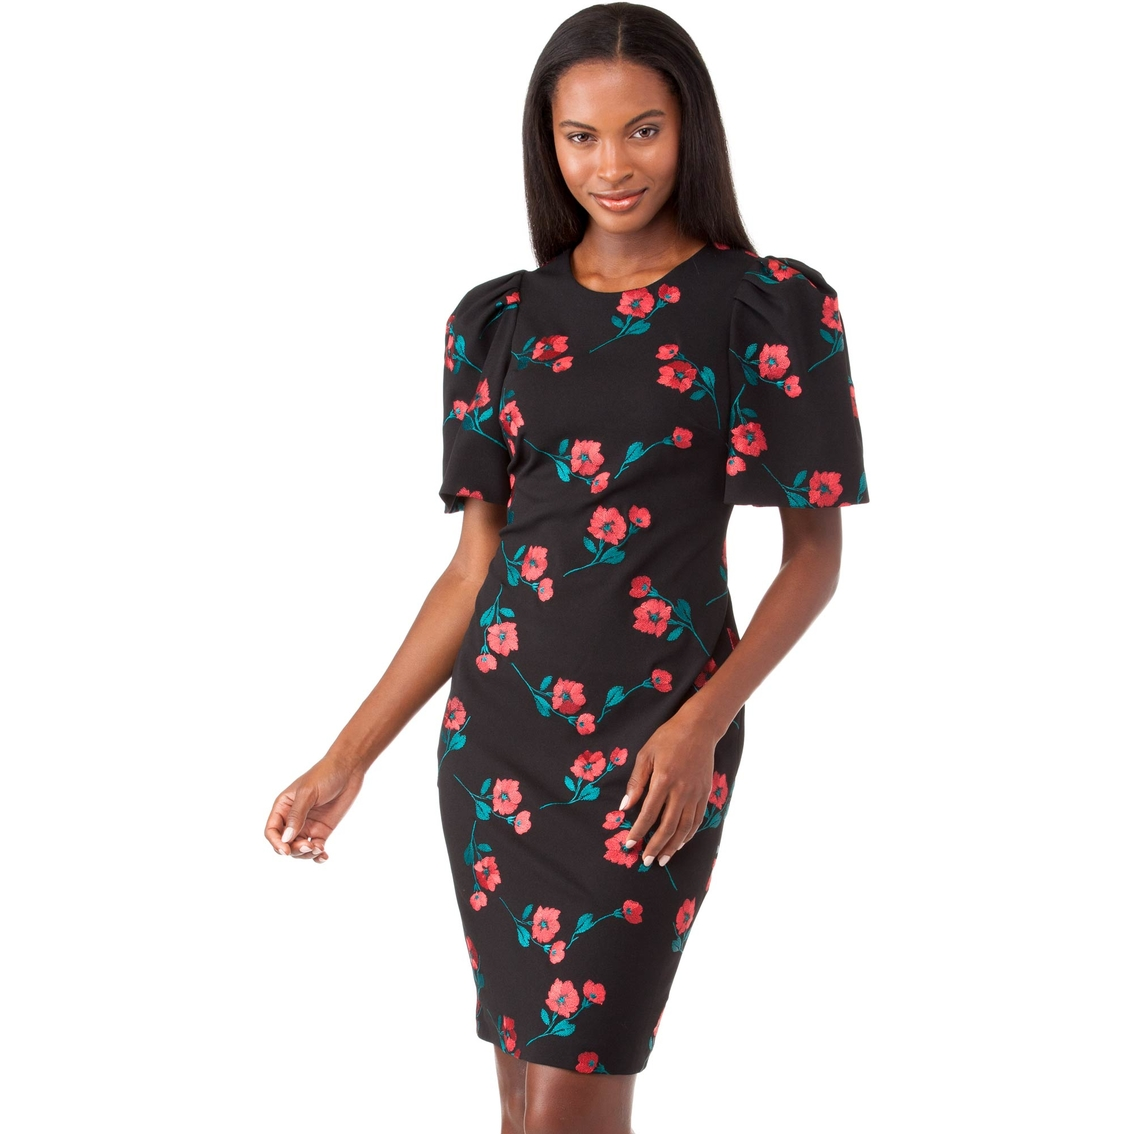 8e05d9504840 Calvin Klein Floral Embroidered Sheath Dress With Puff Sleeves ...